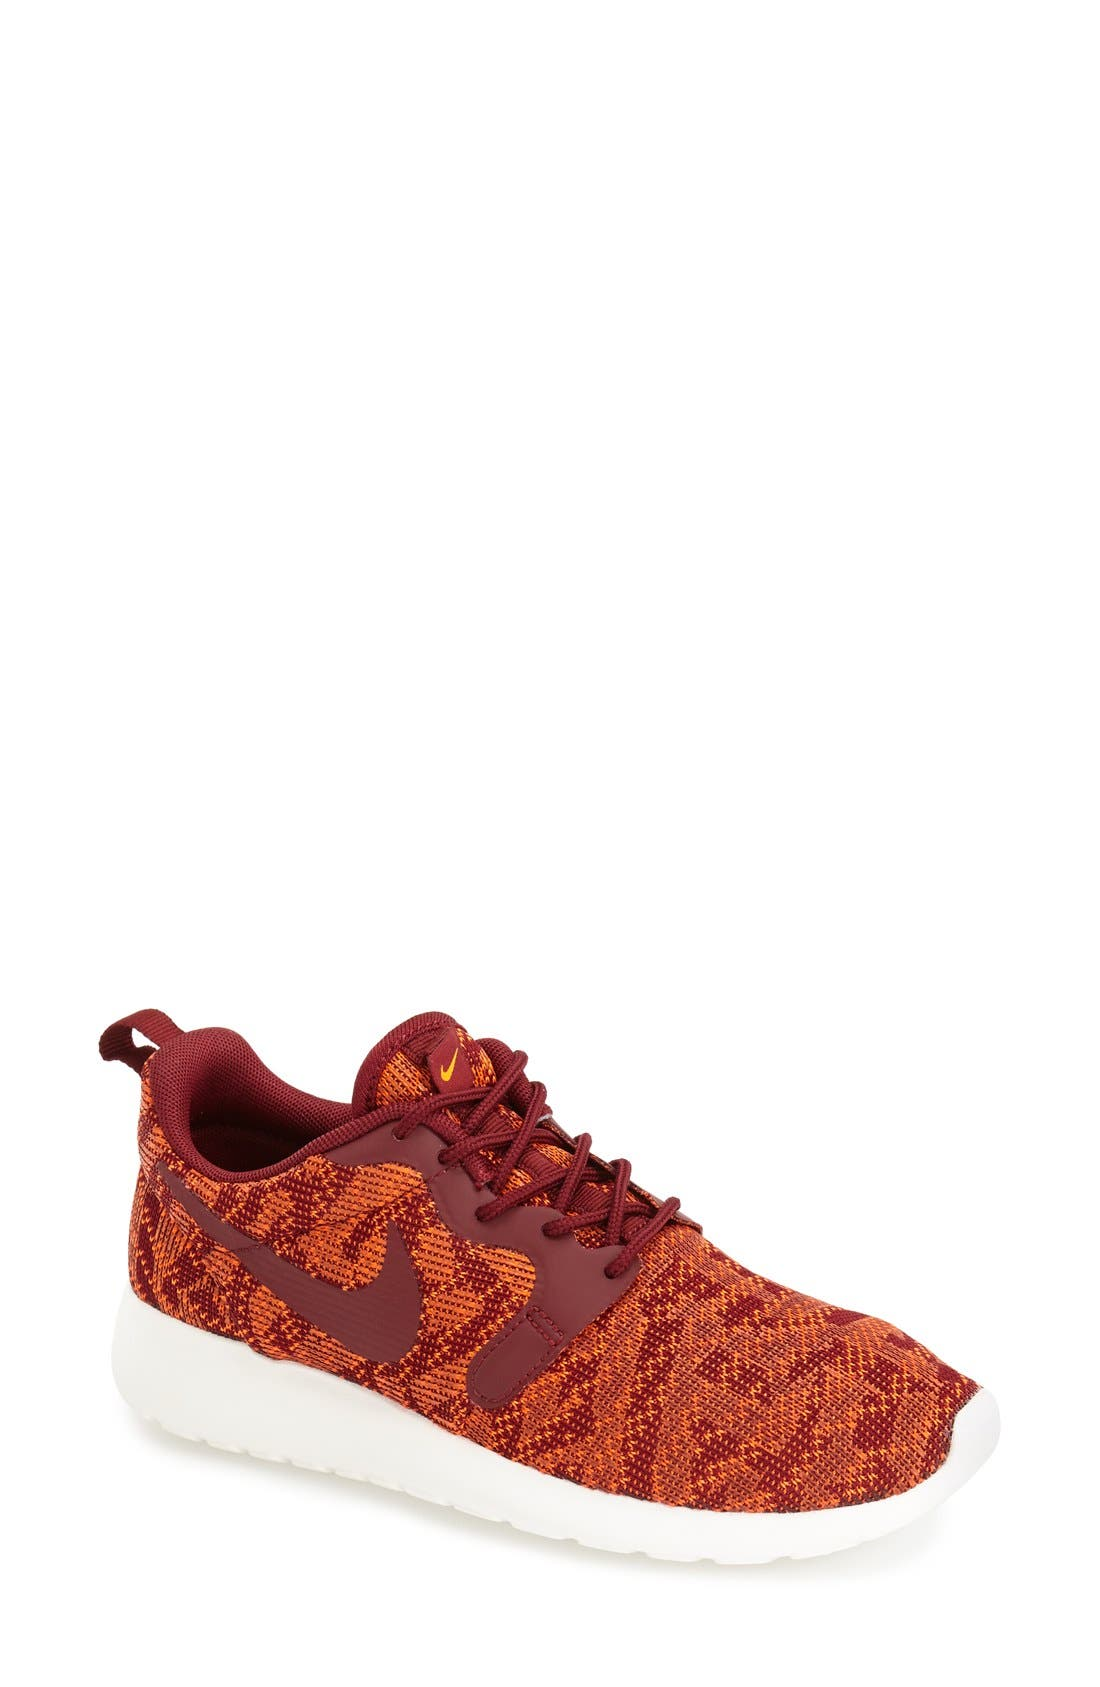 Alternate Image 1 Selected - Nike 'Roshe Run' Jacquard Sneaker (Women)